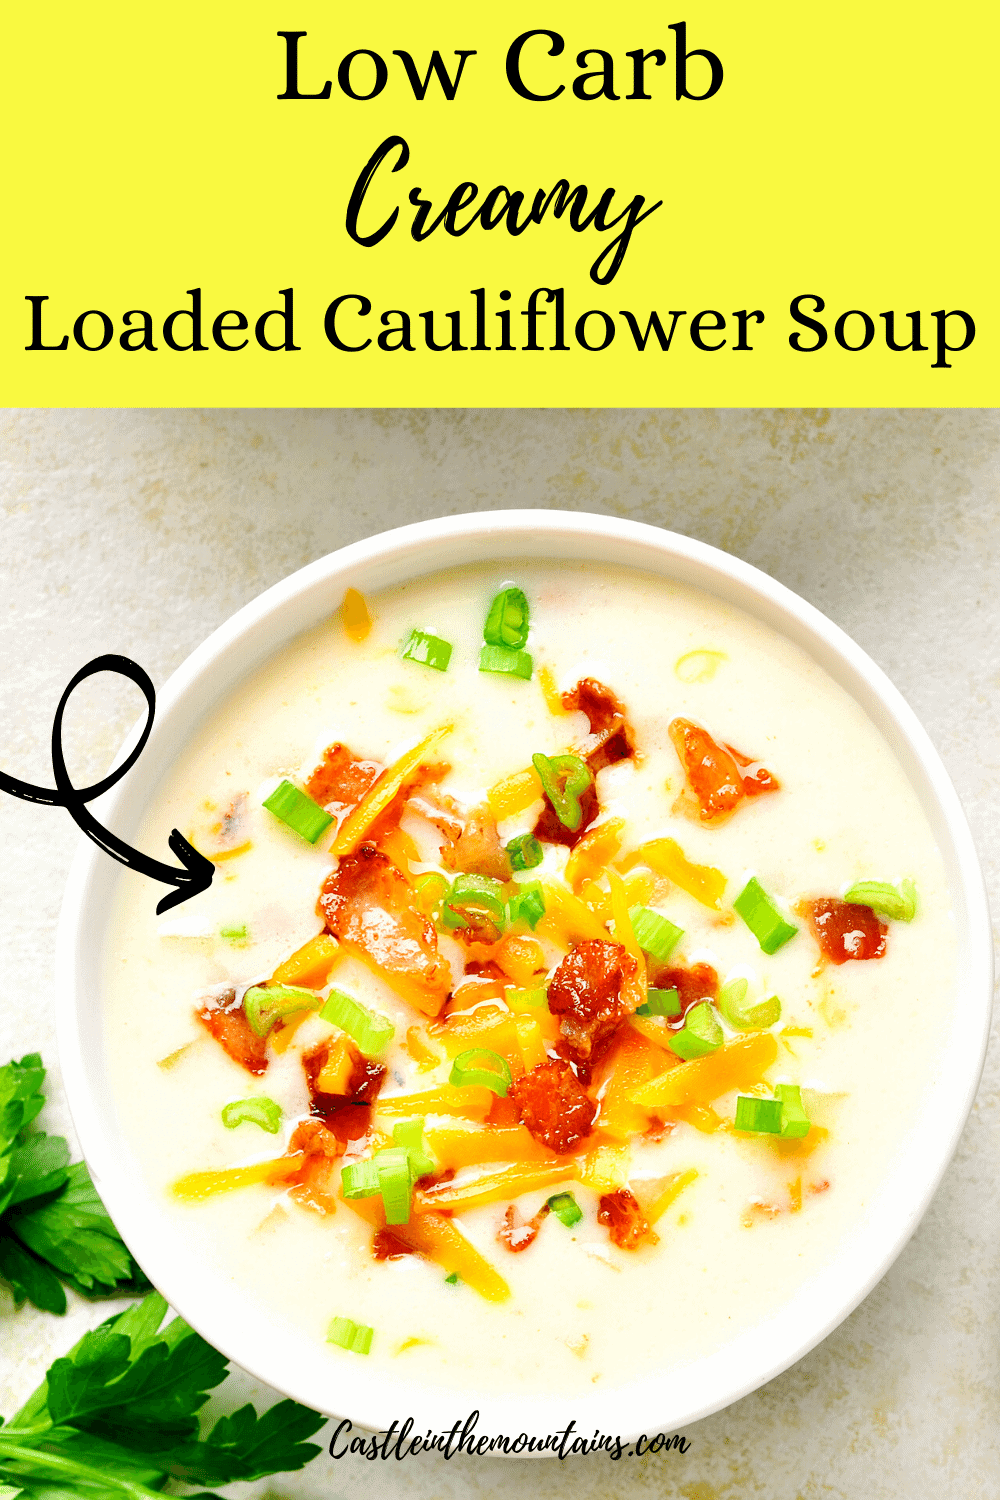 Loaded Cauliflower Soup - Make this tasty soup quick!